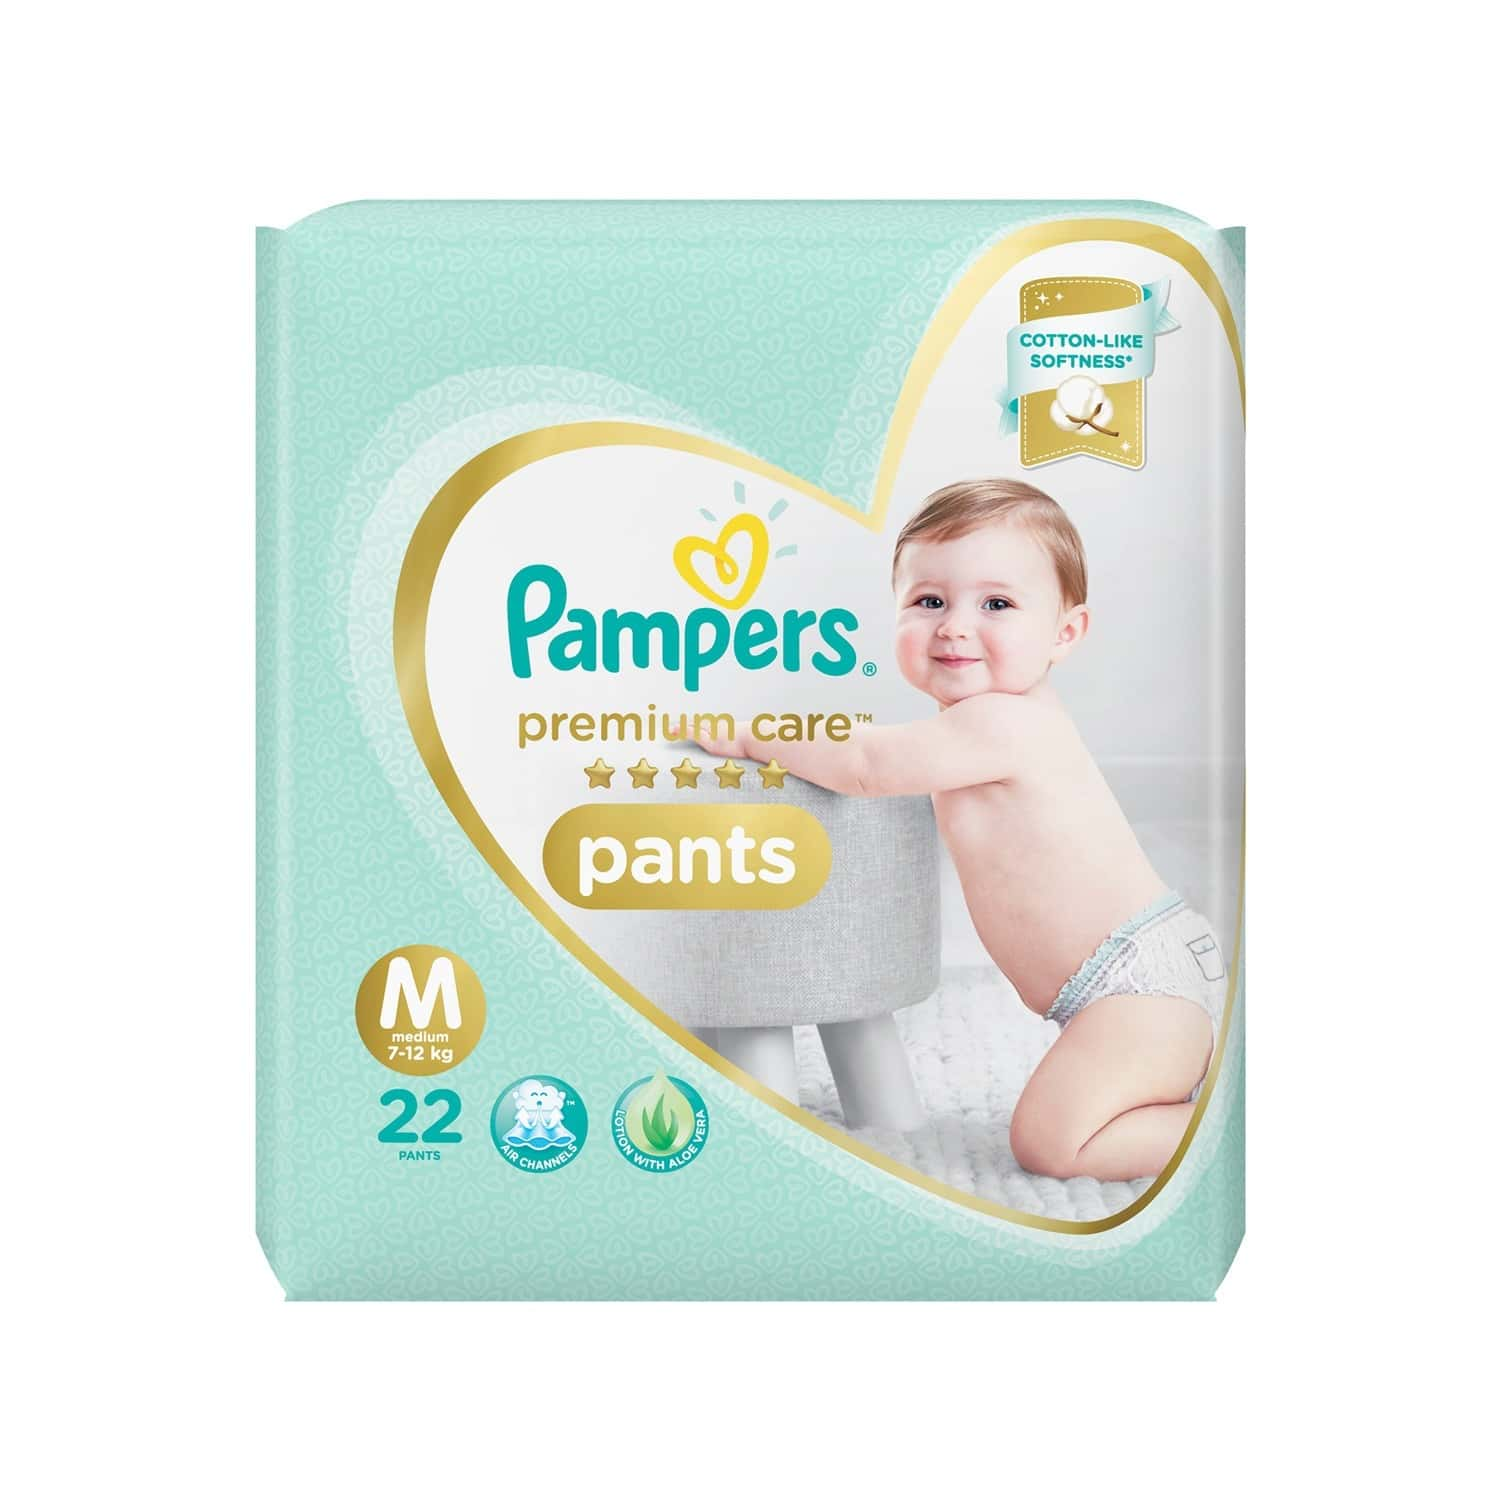 Pampers Premium Care Diaper Size M Packet Of 22